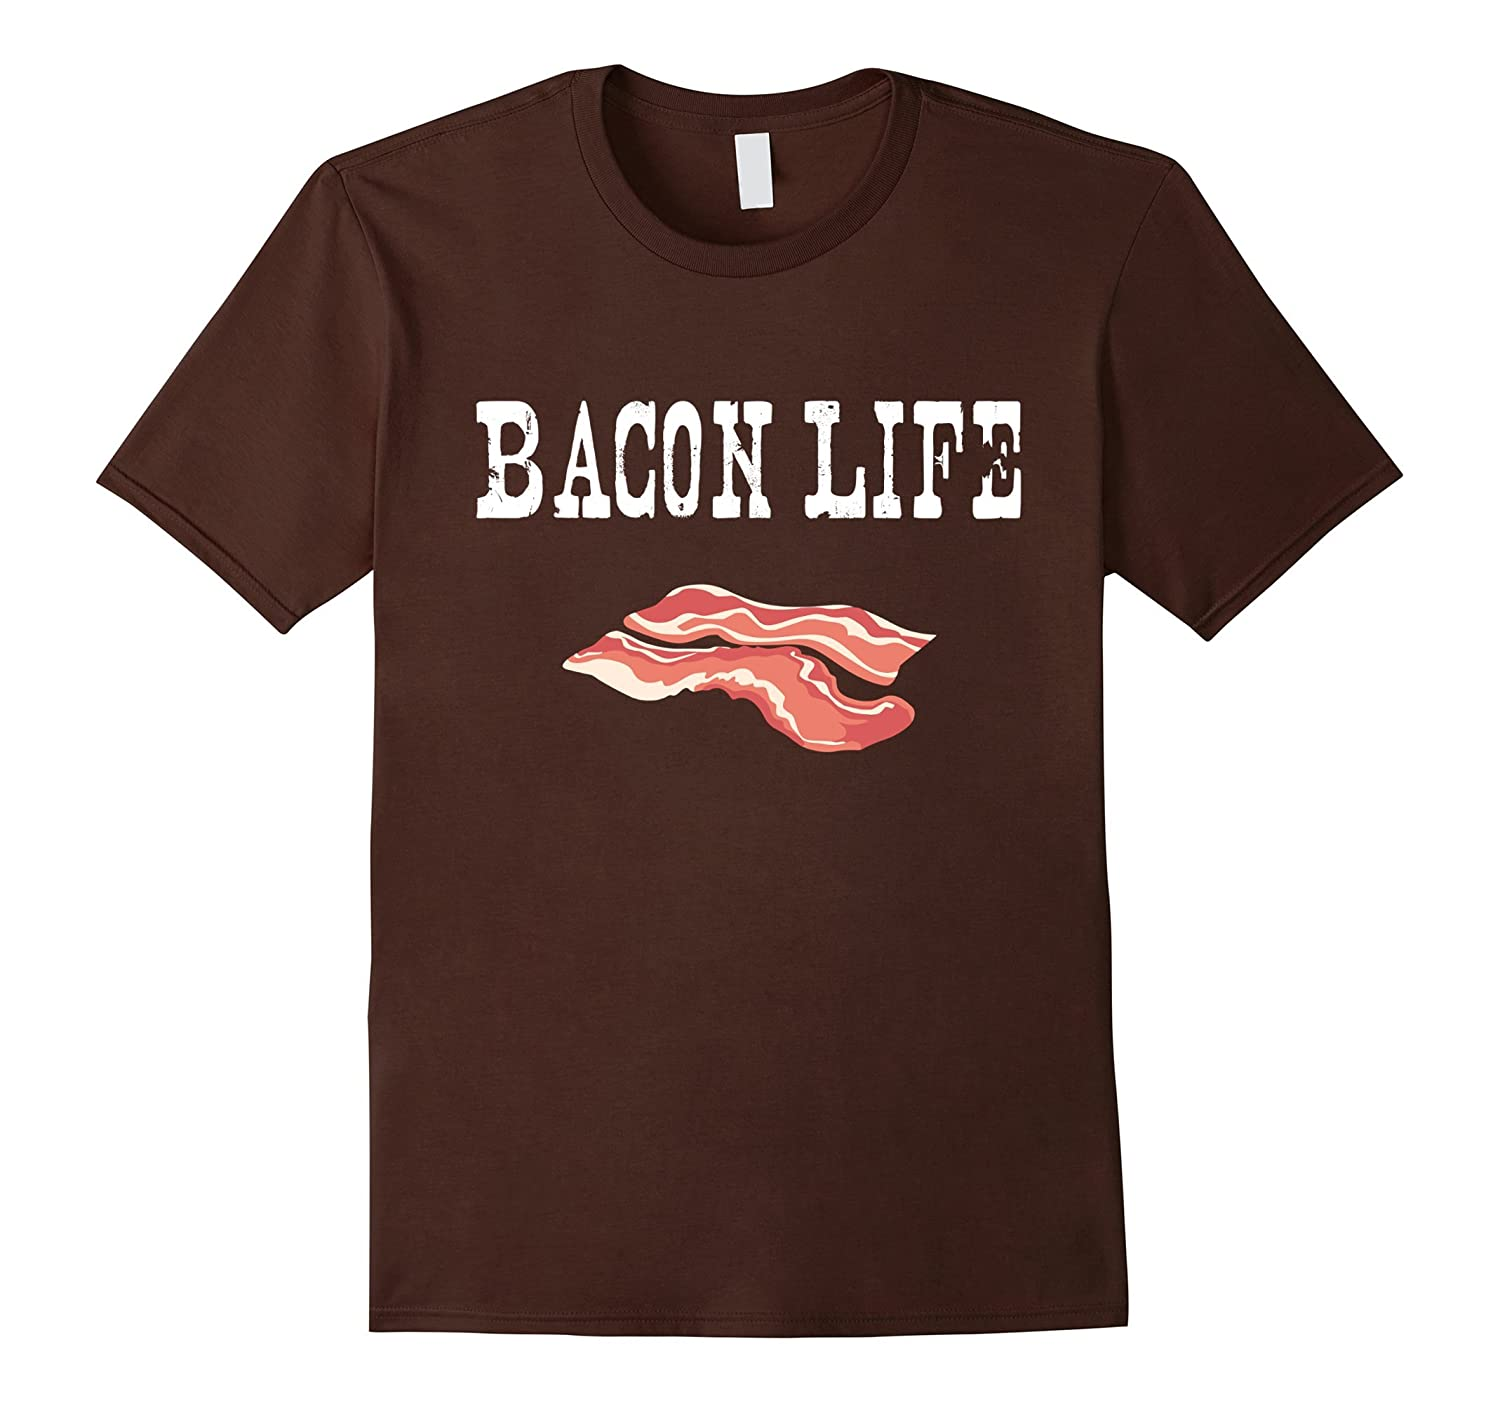 Bacon Life Shirt for Bacon Beer Guns Murica and Freedom Fans